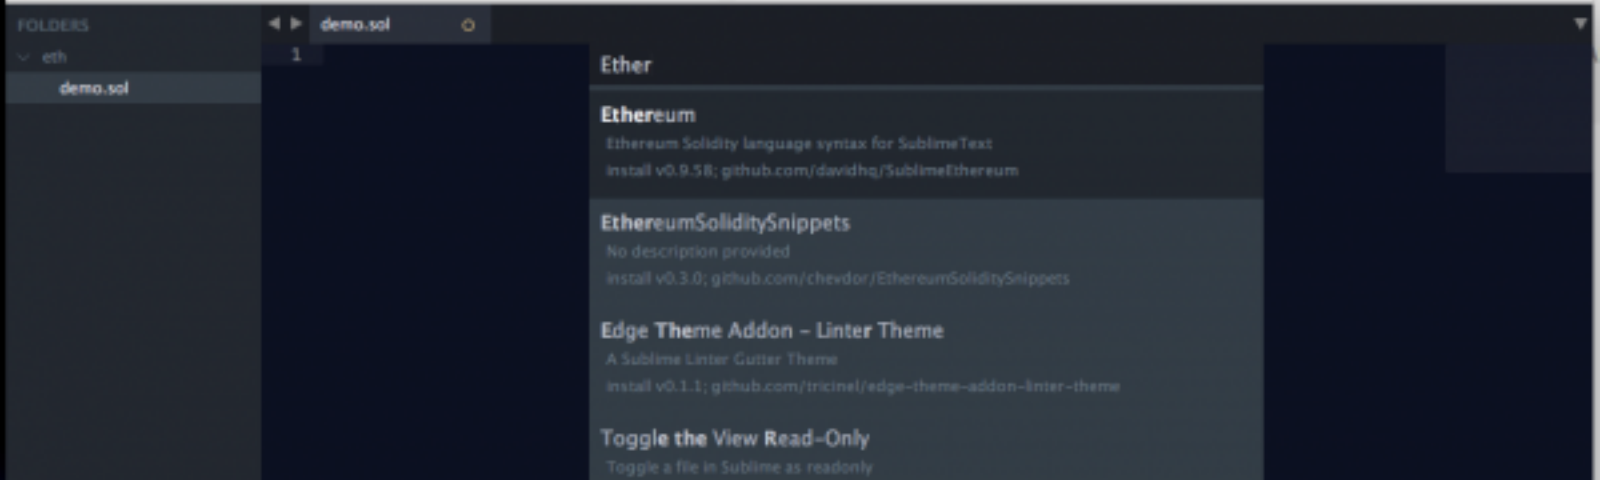 Ethereum-Solidity language syntax in Sublime - Tech Geek